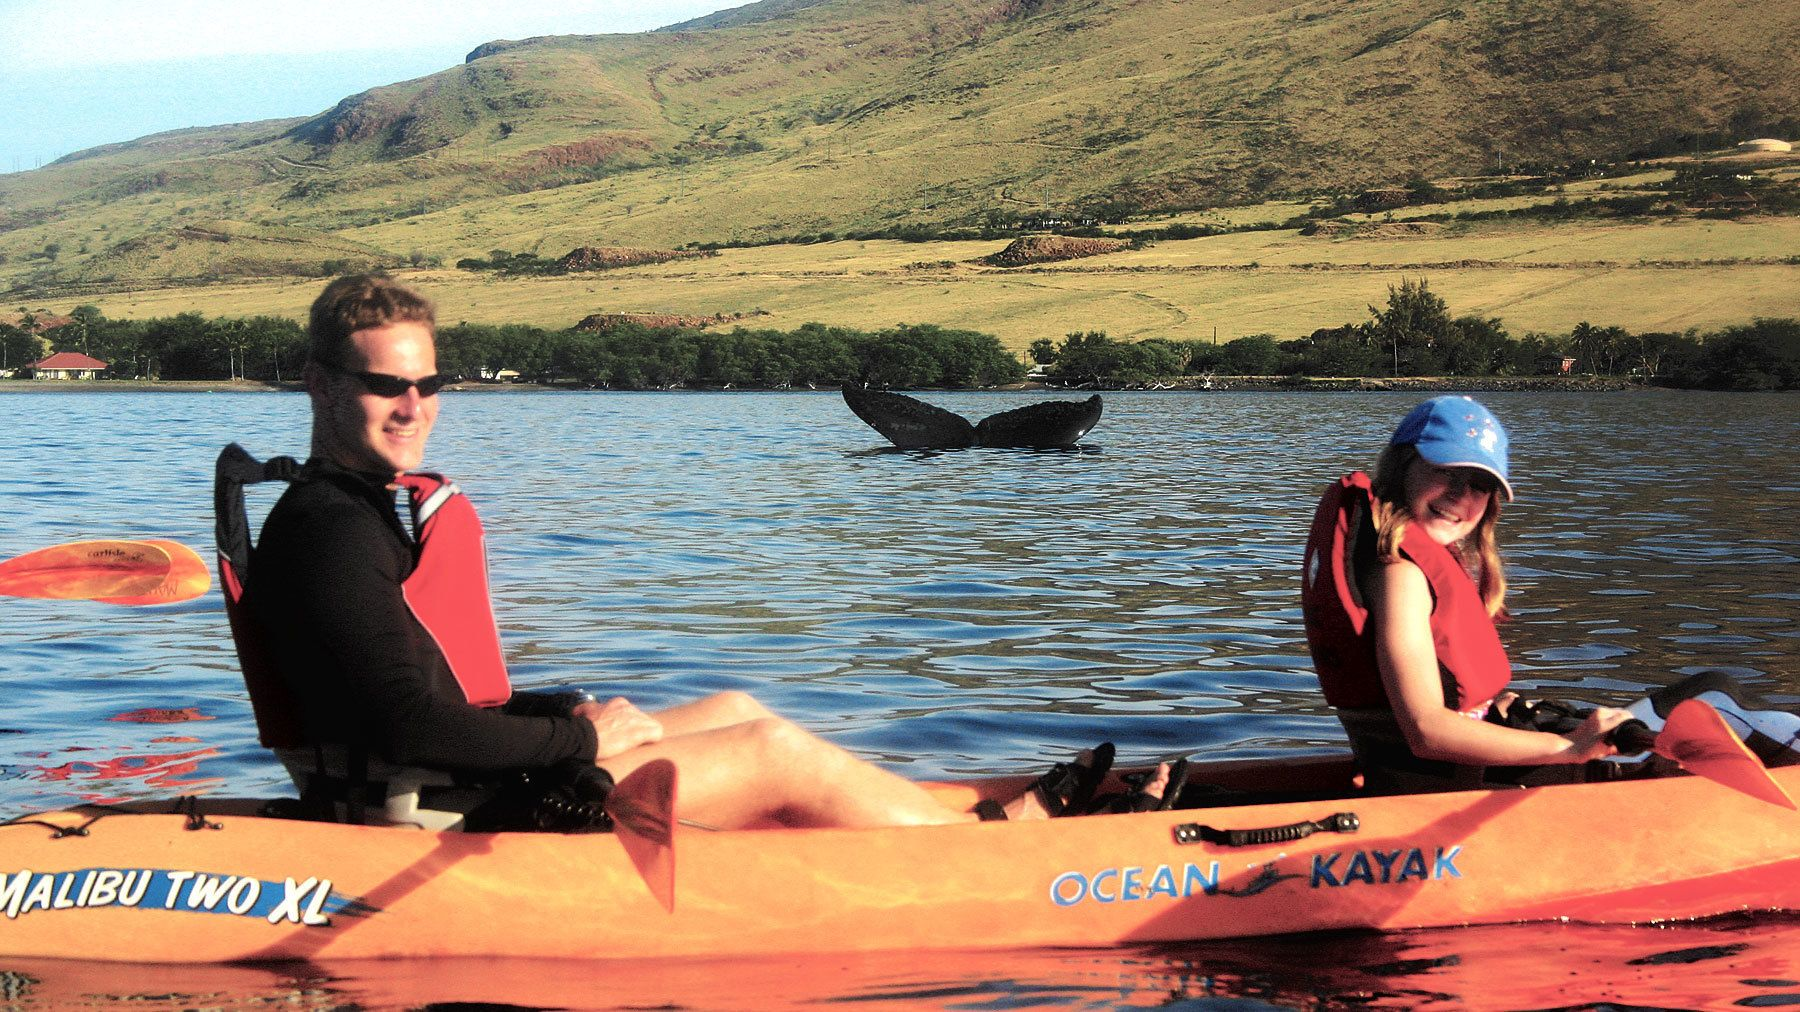 Father and daughter have picture taken with whale tail in background in Maui